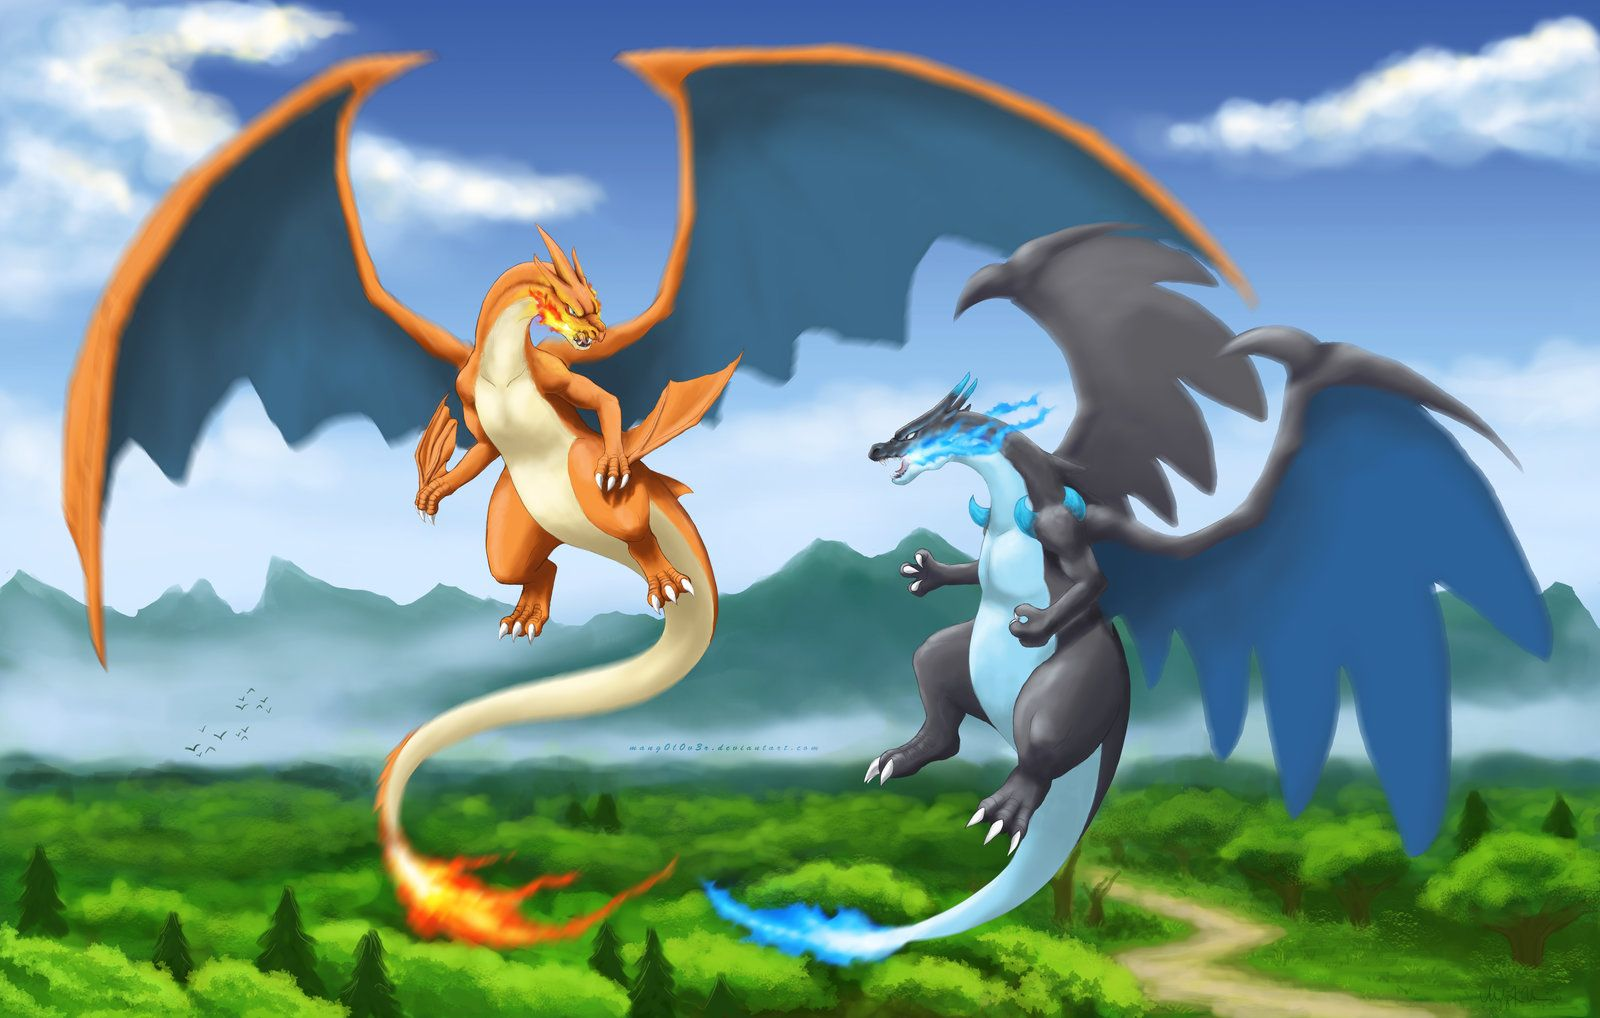 Mega Charizard Clash By Mang0l0v3r.deviantart.com On